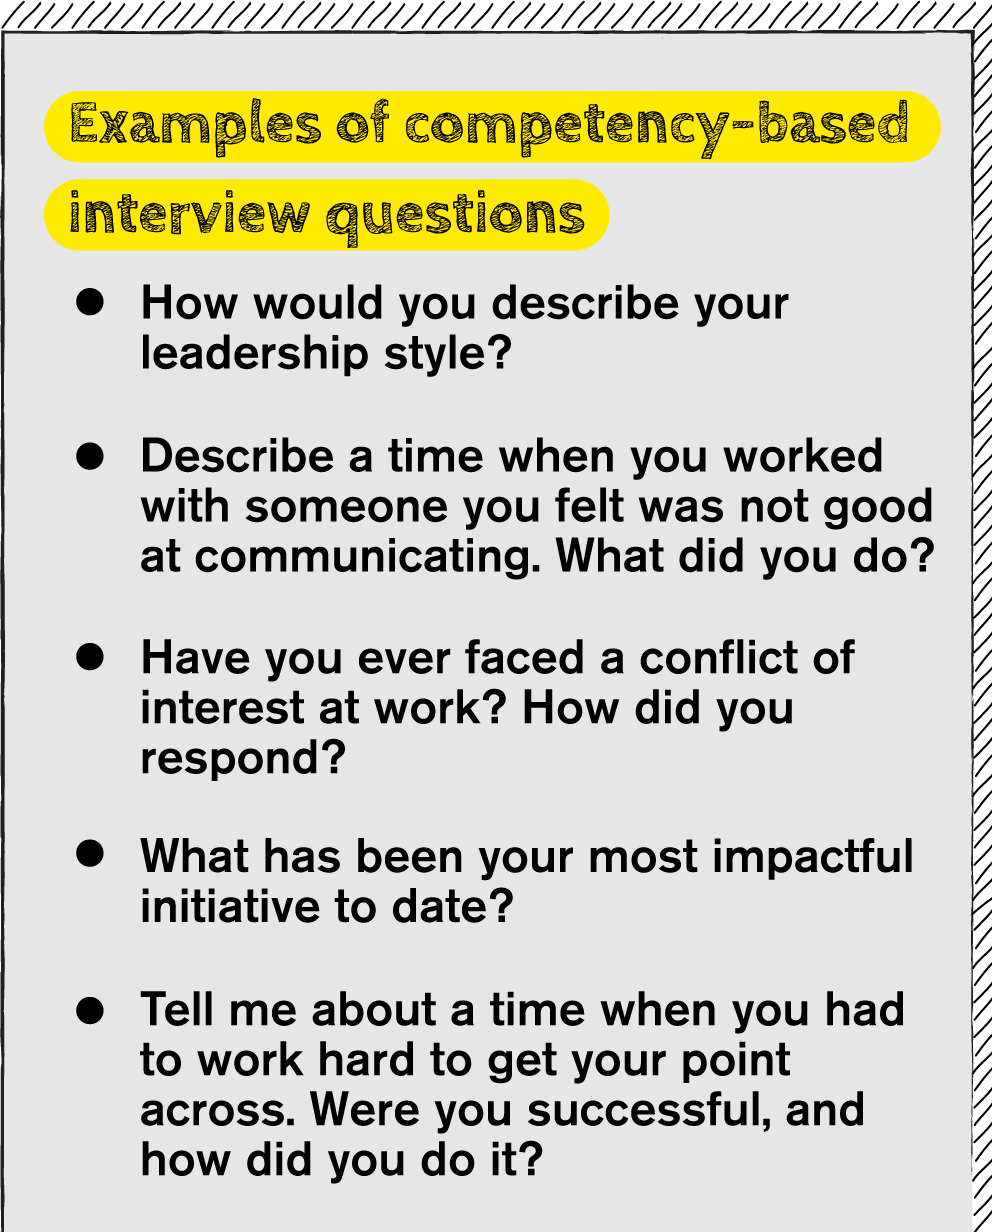 Examples of Competency-Based Interview Questions